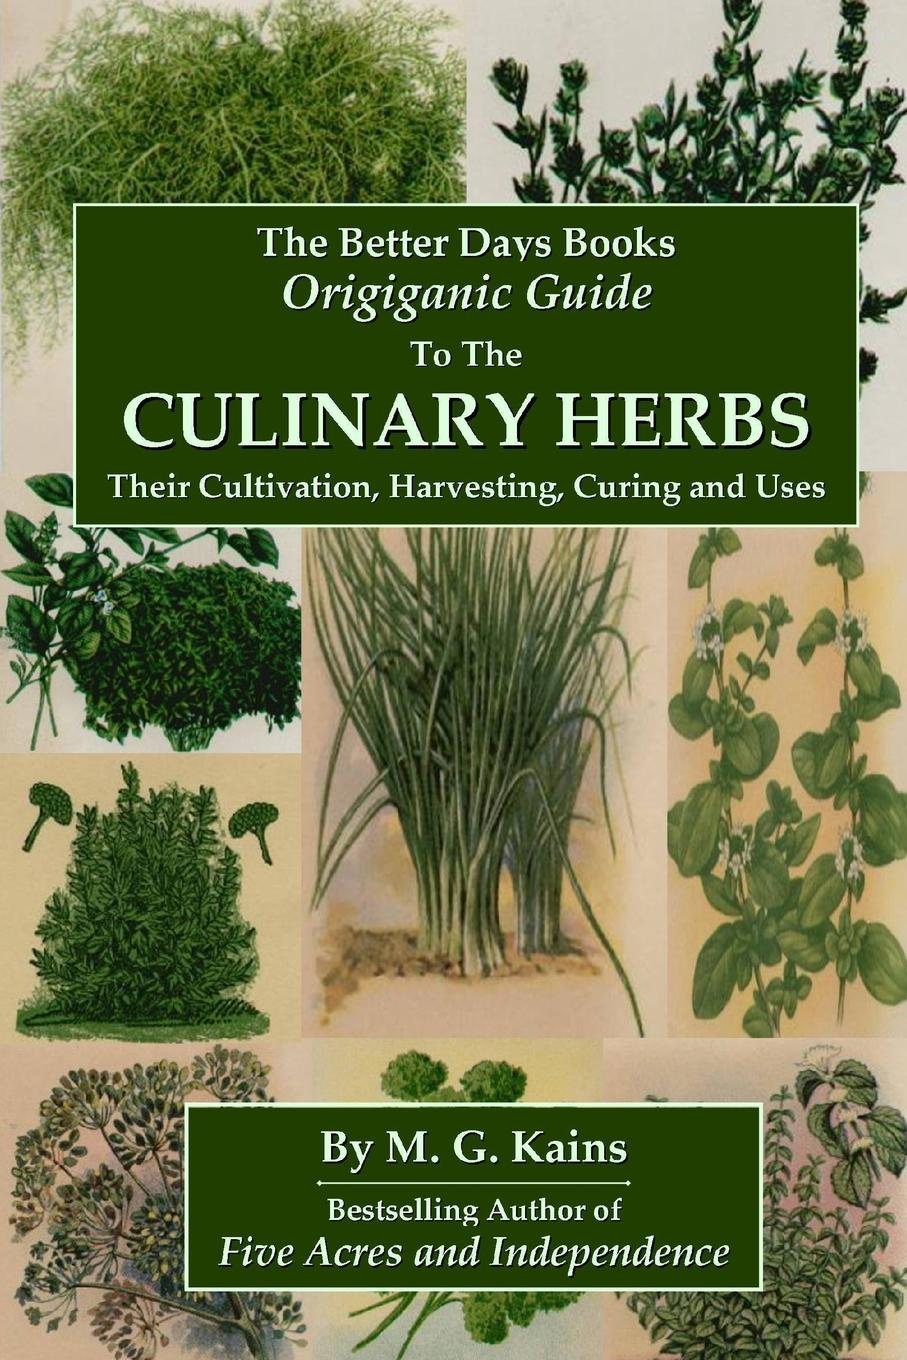 Фото - M. G. Kains The Better Days Books Origiganic Guide to the Culinary Herbs. Their Cultivation, Harvesting, Curing And Uses 5pcs em78p156elpj g dip18 em78p156elpj dip em78p156 new and original ic free shipping